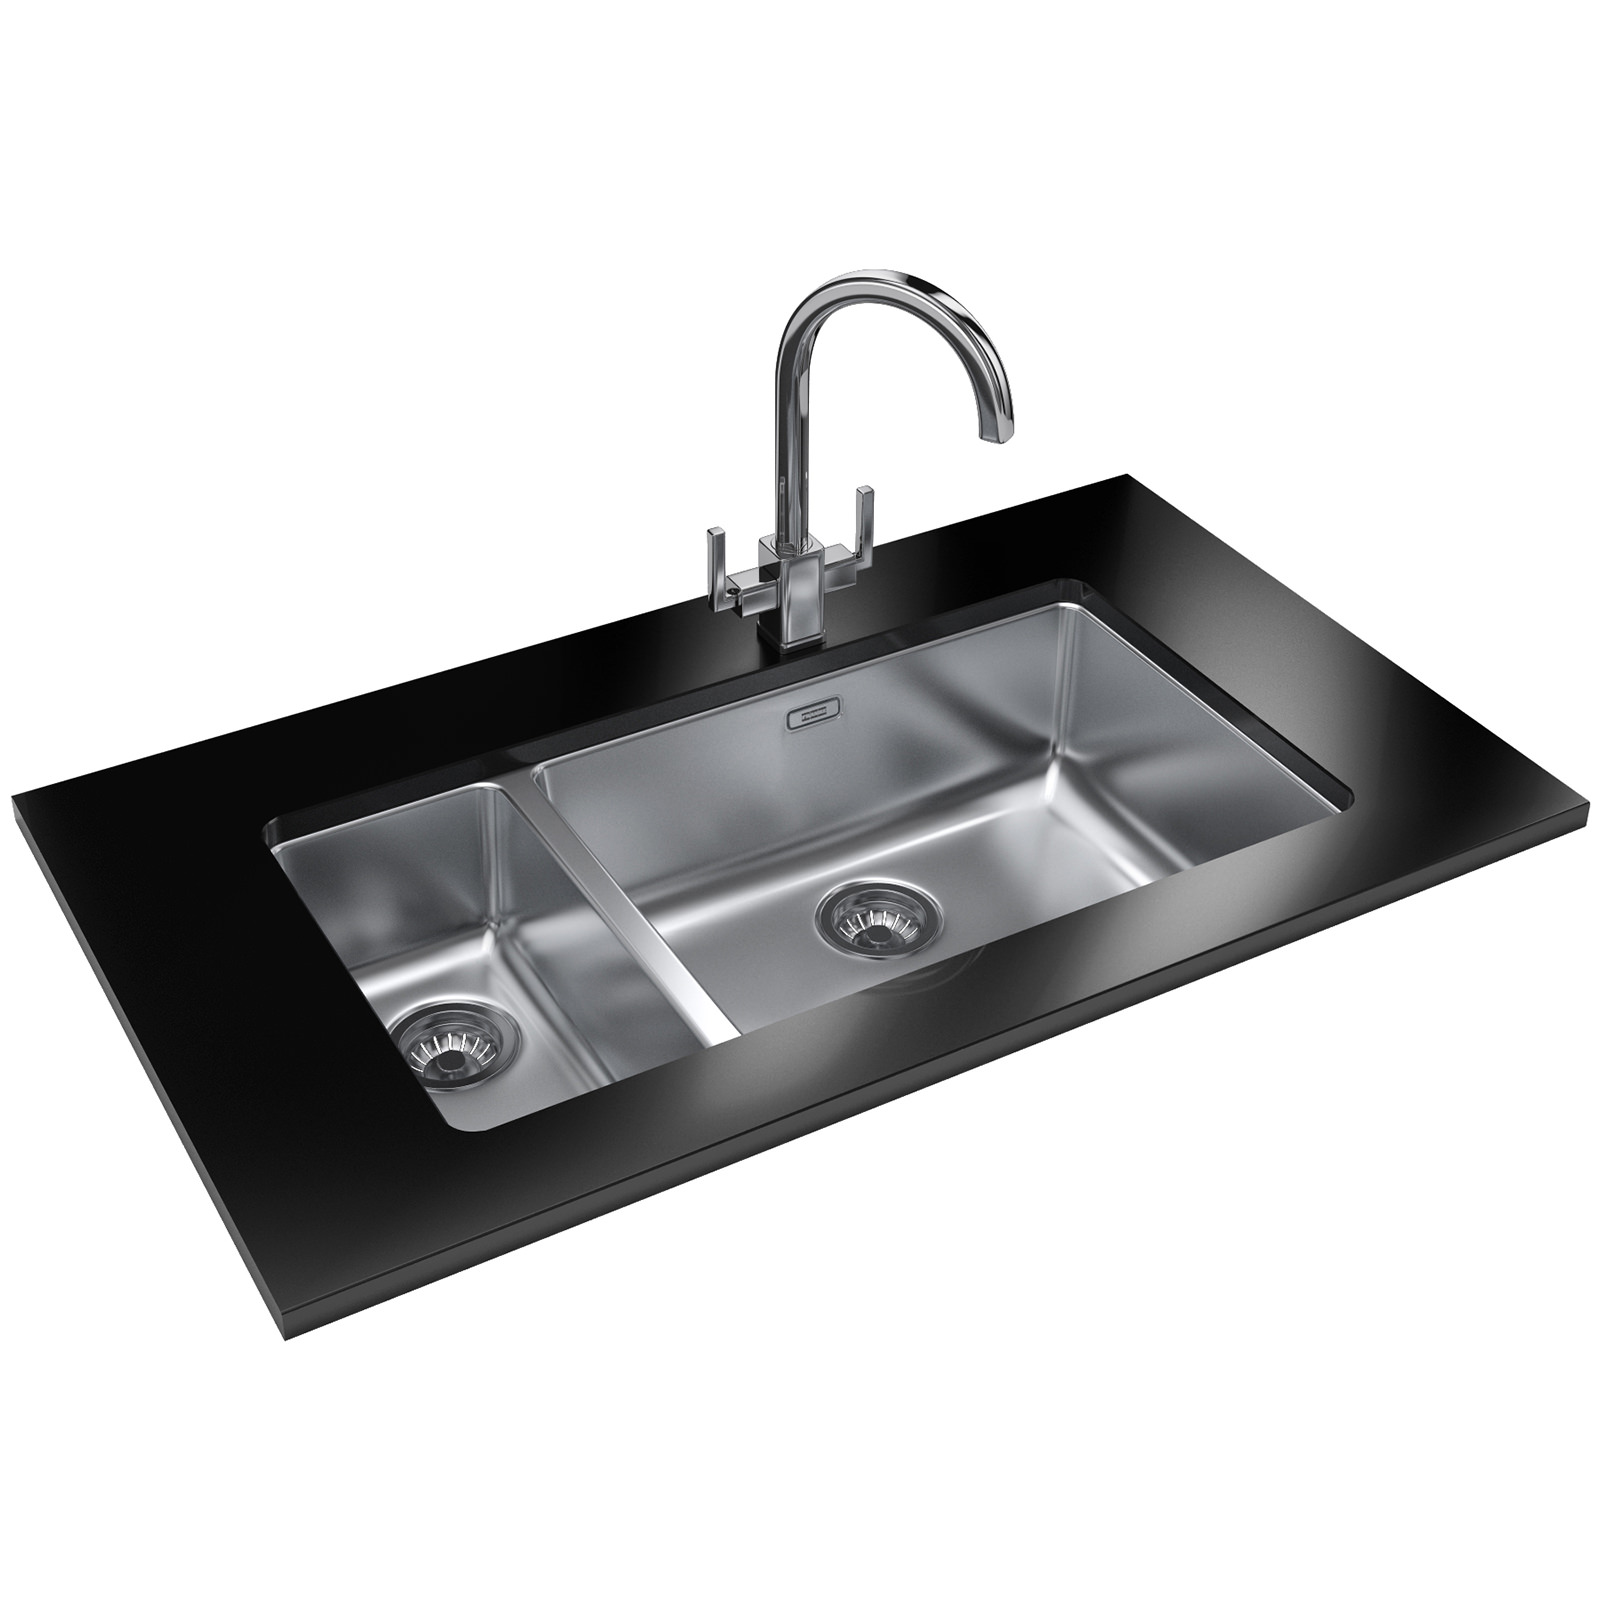 Franke Ss Sinks : Franke Kubus KBX 160 55-20 Designer Pack - Stainless Steel Sink And ...